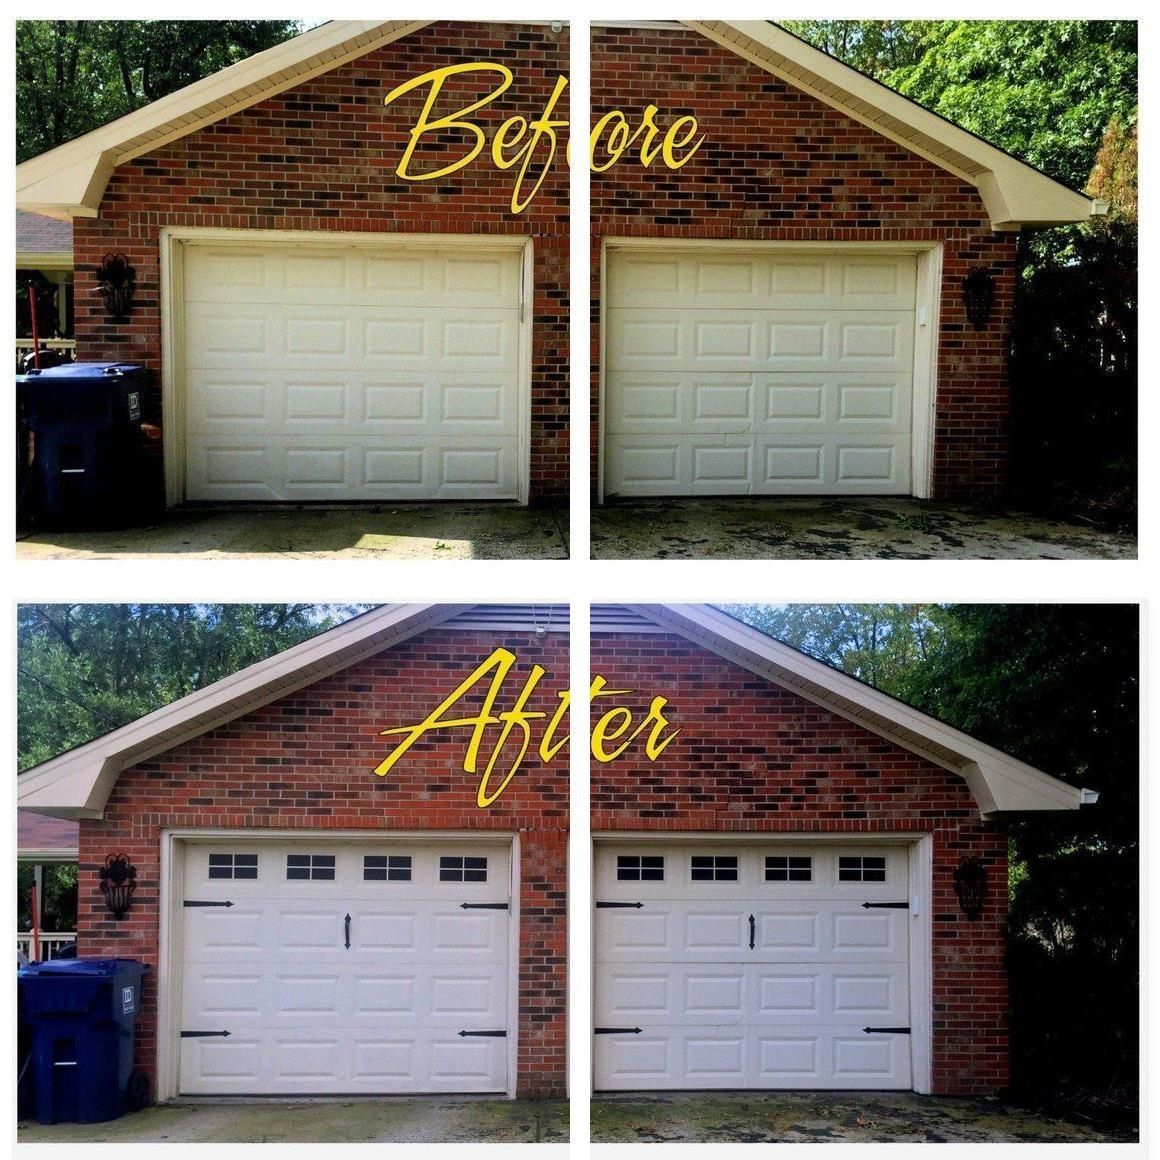 Vintage Car Garage Decor Decorative Garage Doors Garage Accessories Calgary Garage Door Windows Garage Doors Faux Garage Door Windows